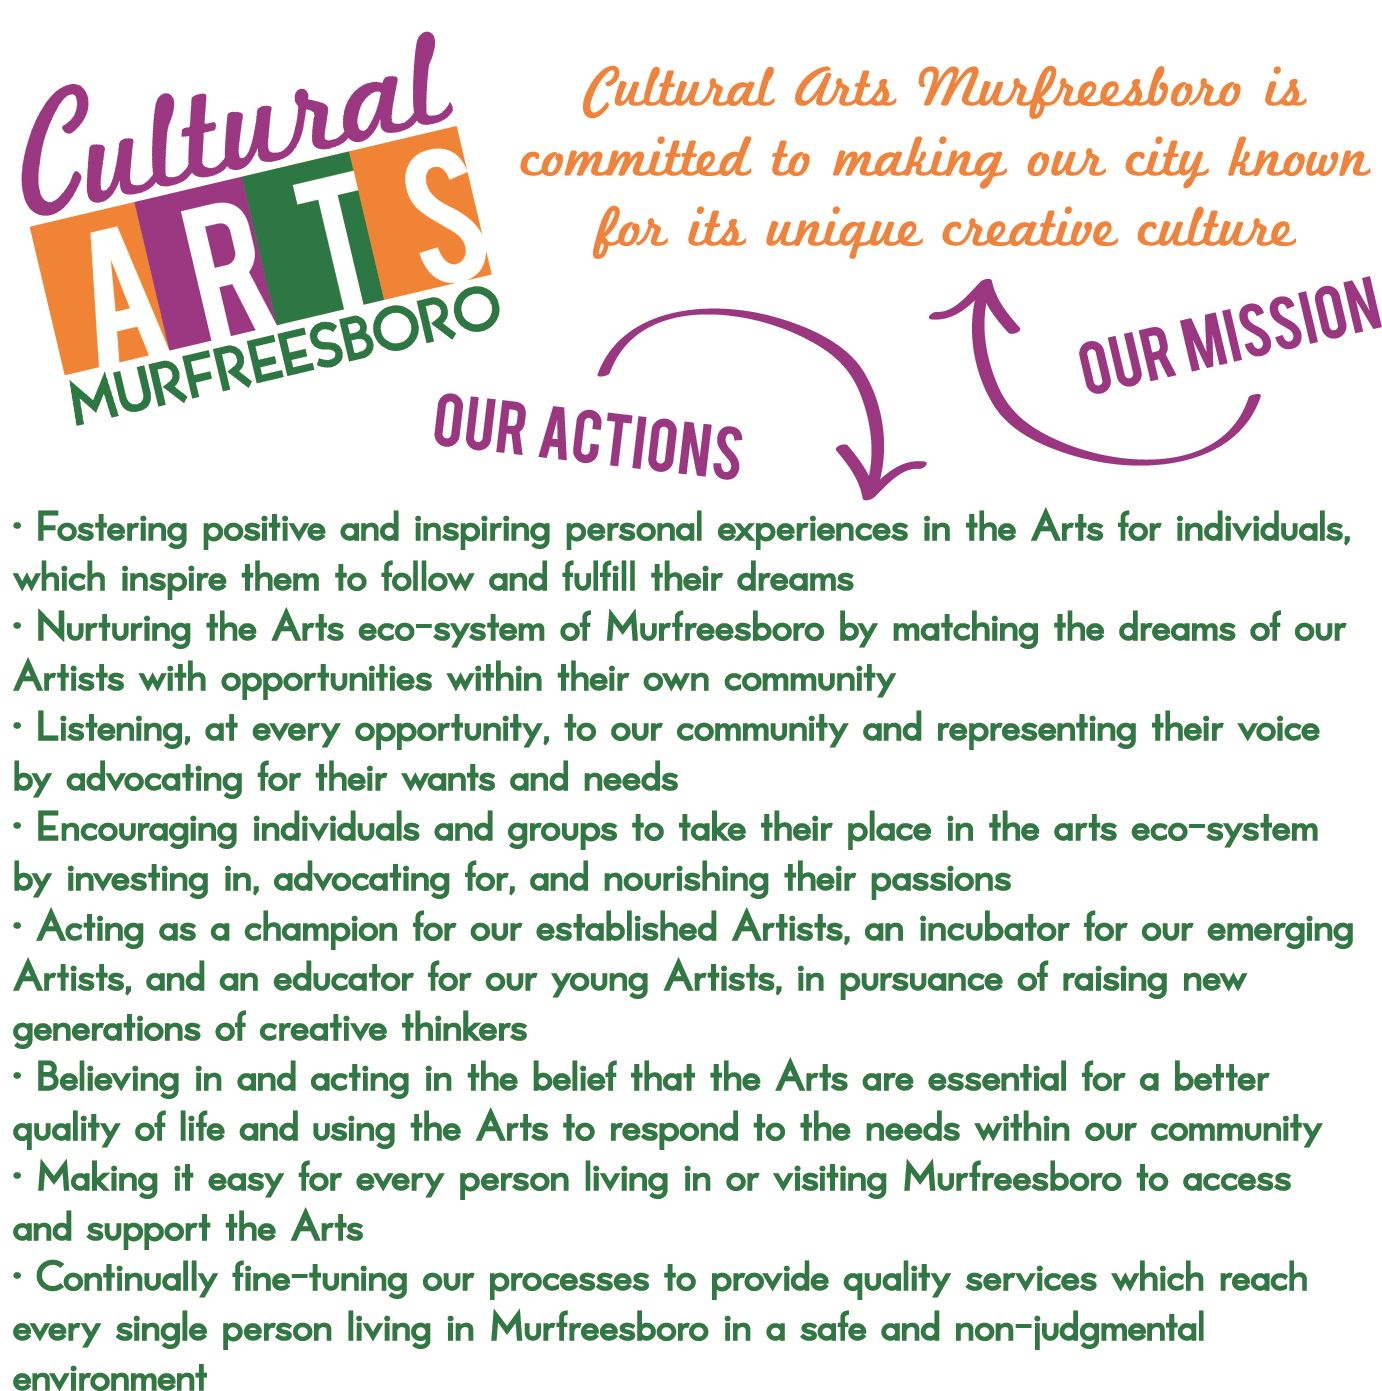 Cultural Arts Mission and Actions